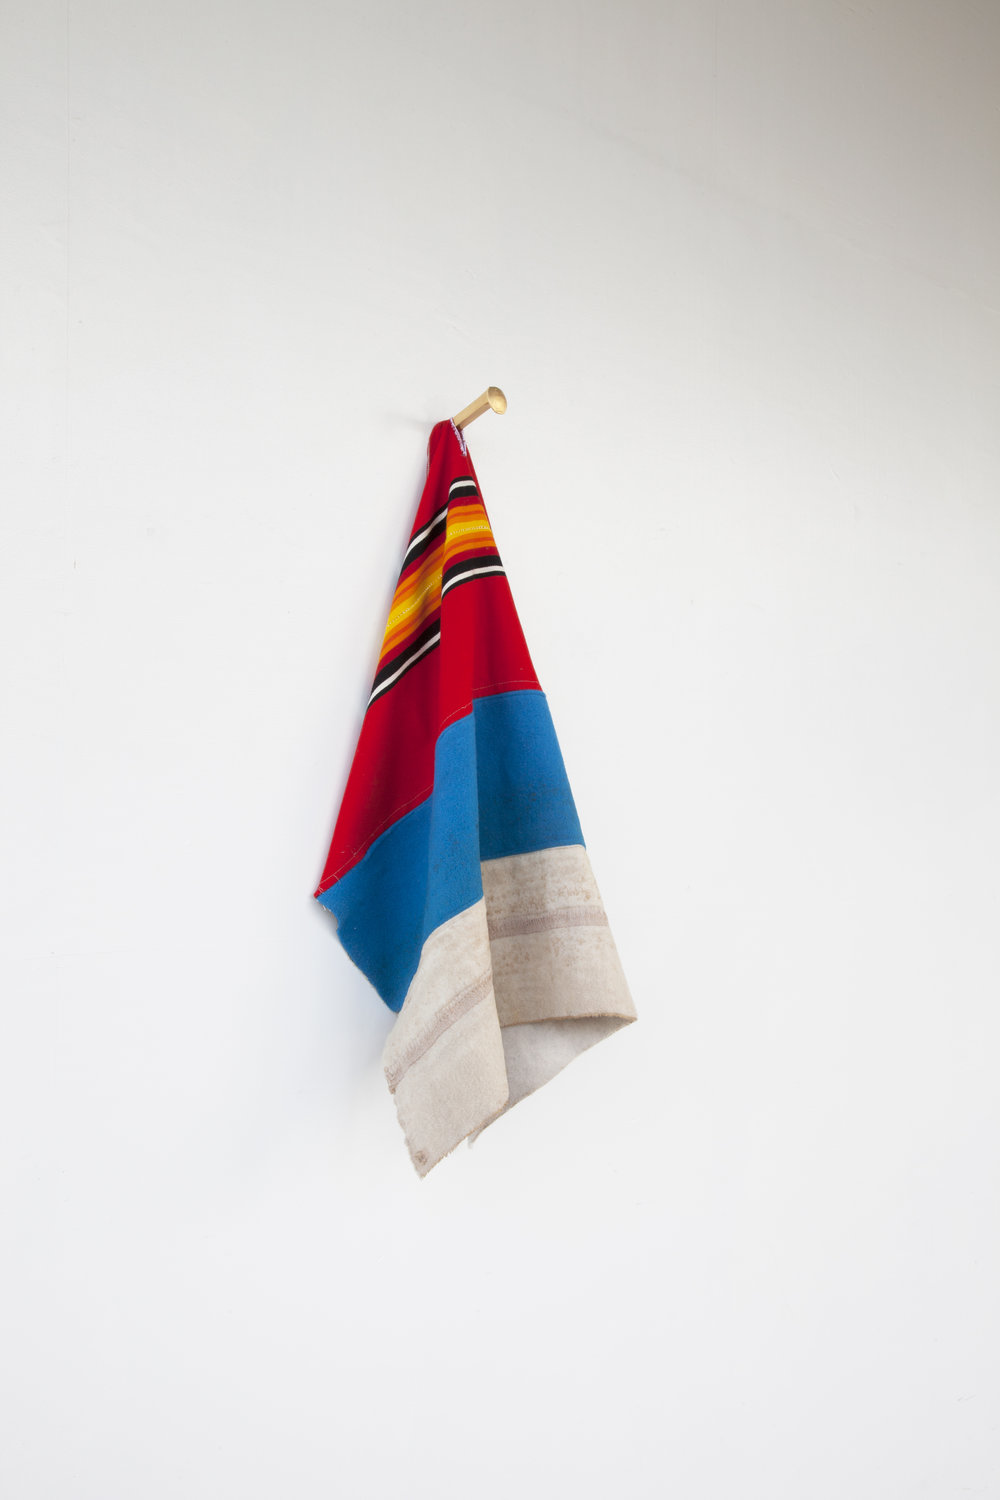 FIN (The End of the Line),  2015  Gilded Cast Iron, Pendleton Wool Selvage, Copenhagen Chewing Tobacco  44 x 19 x 7 in  Photo: Tara J Graves